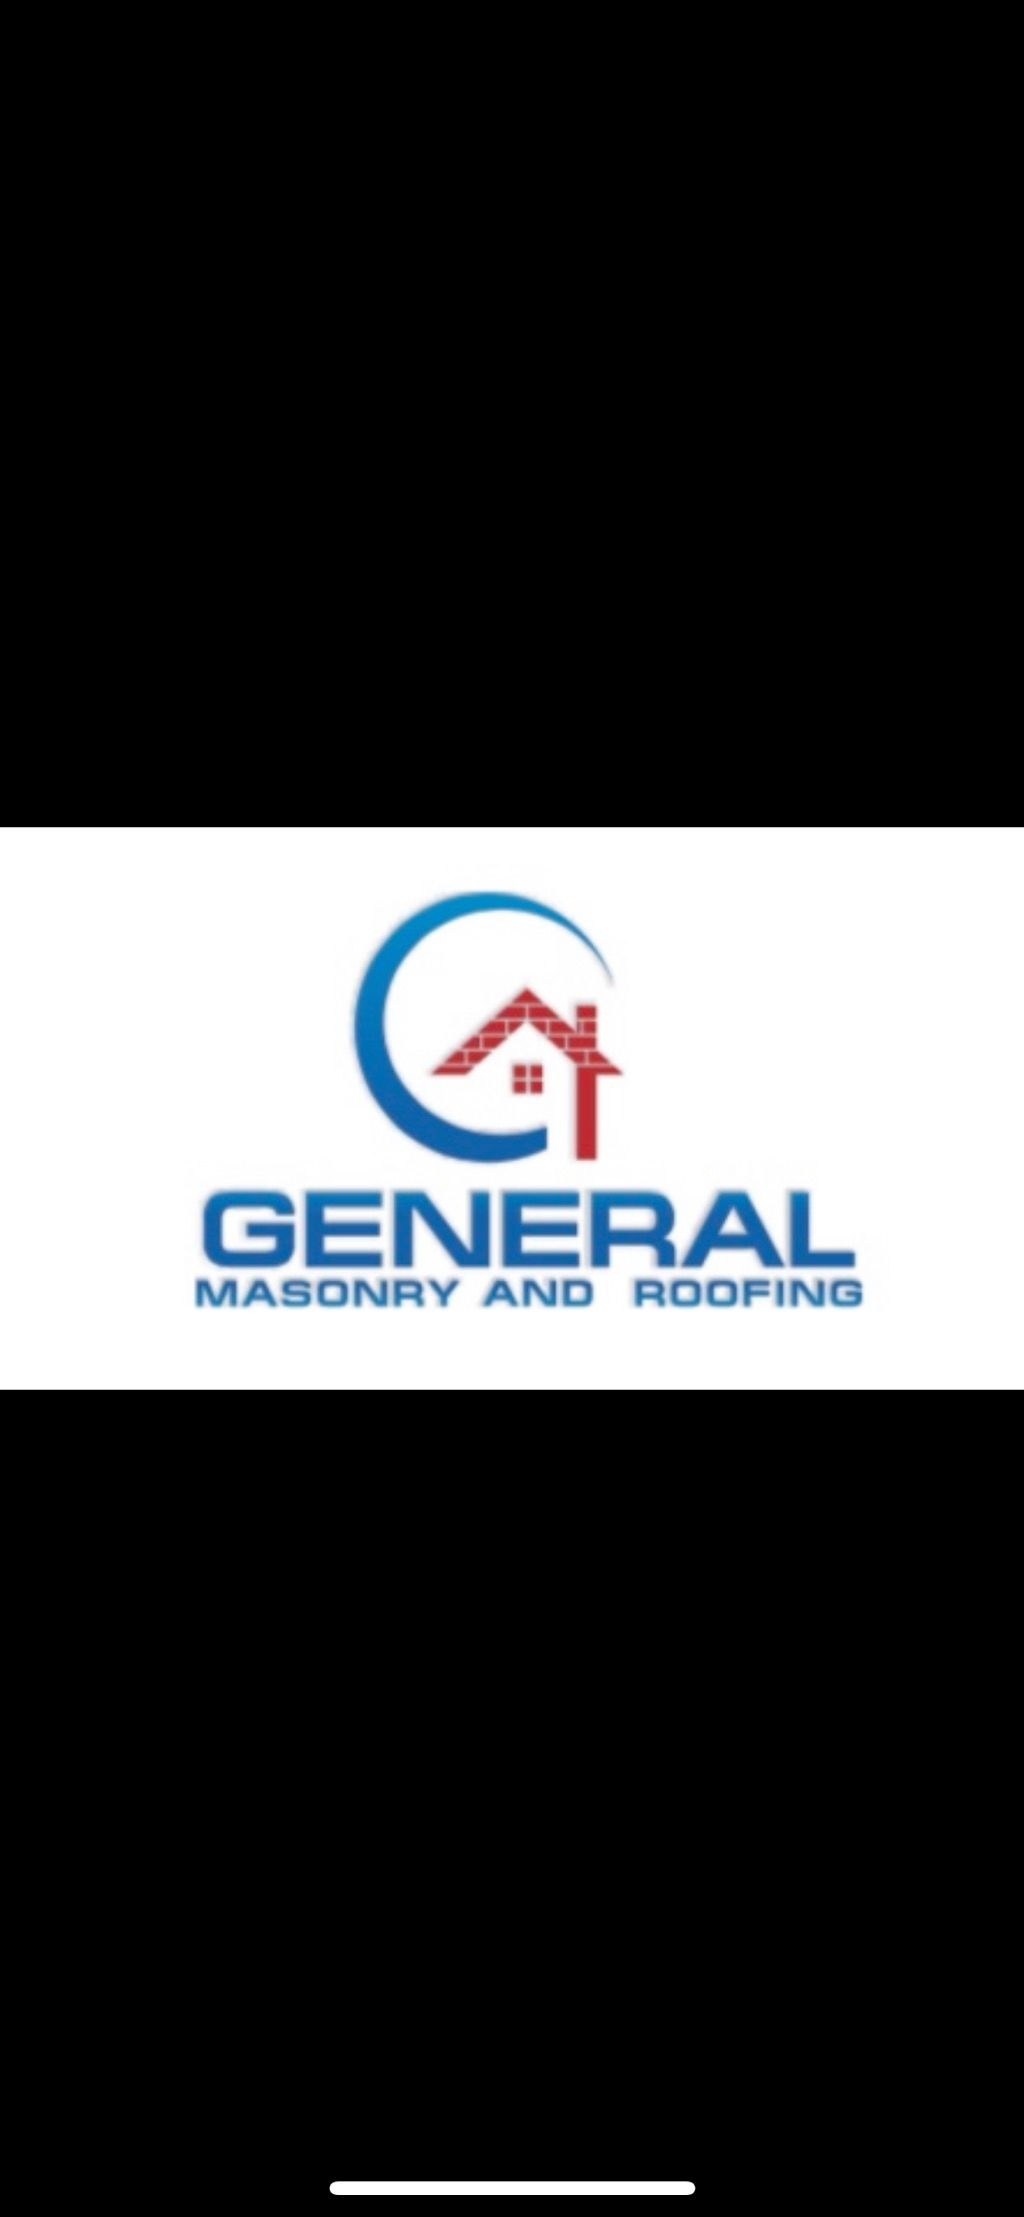 General masonry and roofing llc